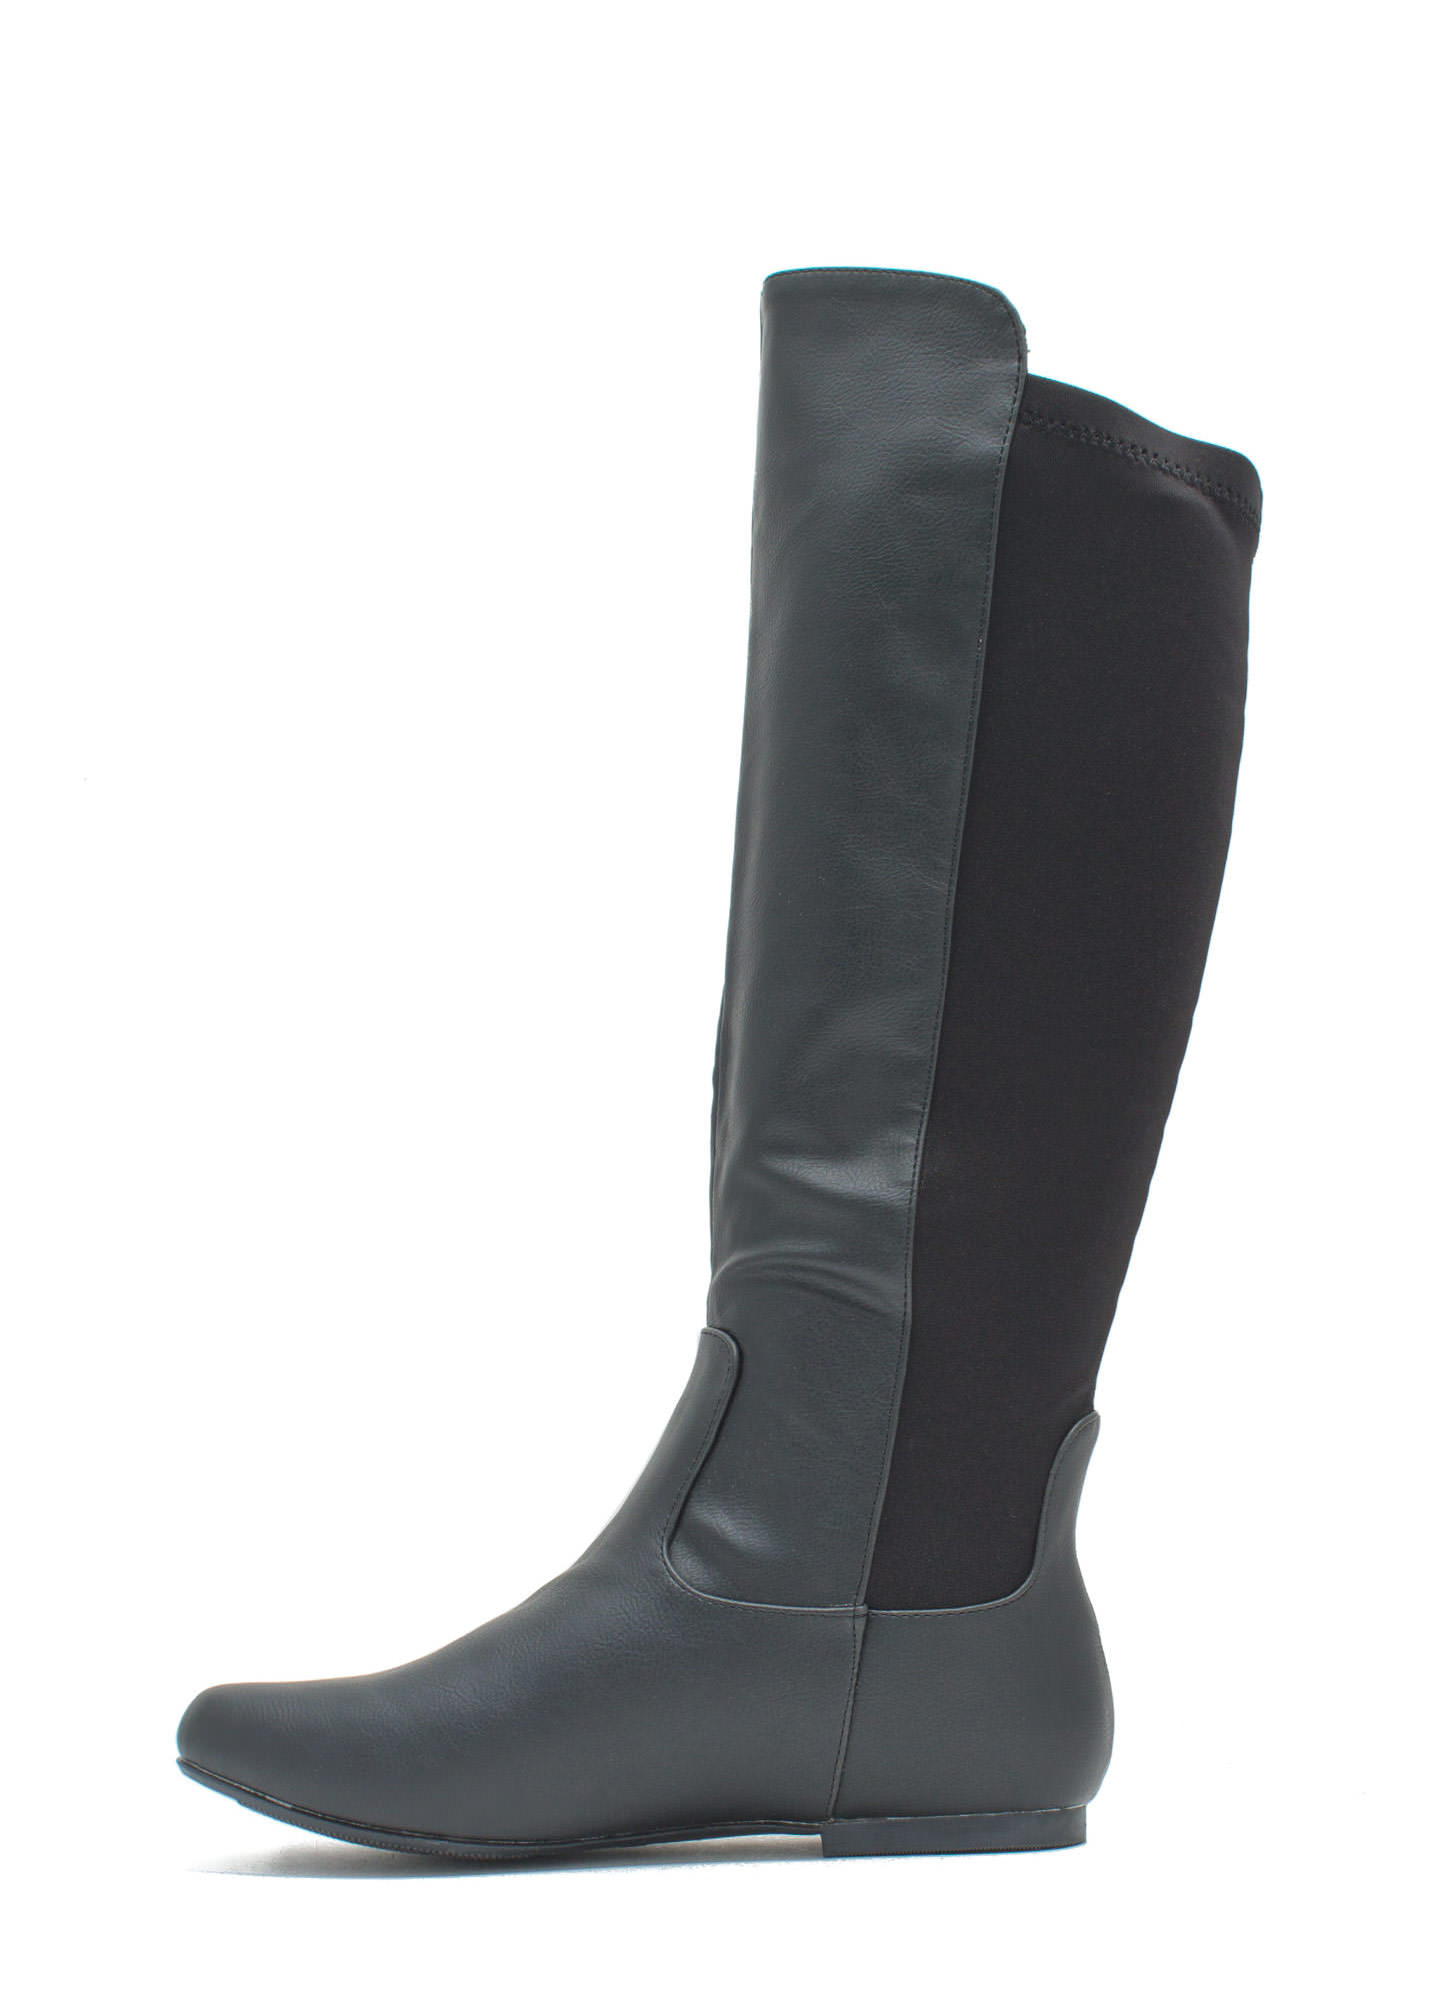 Around Town Faux Leather Riding Boots BLACK